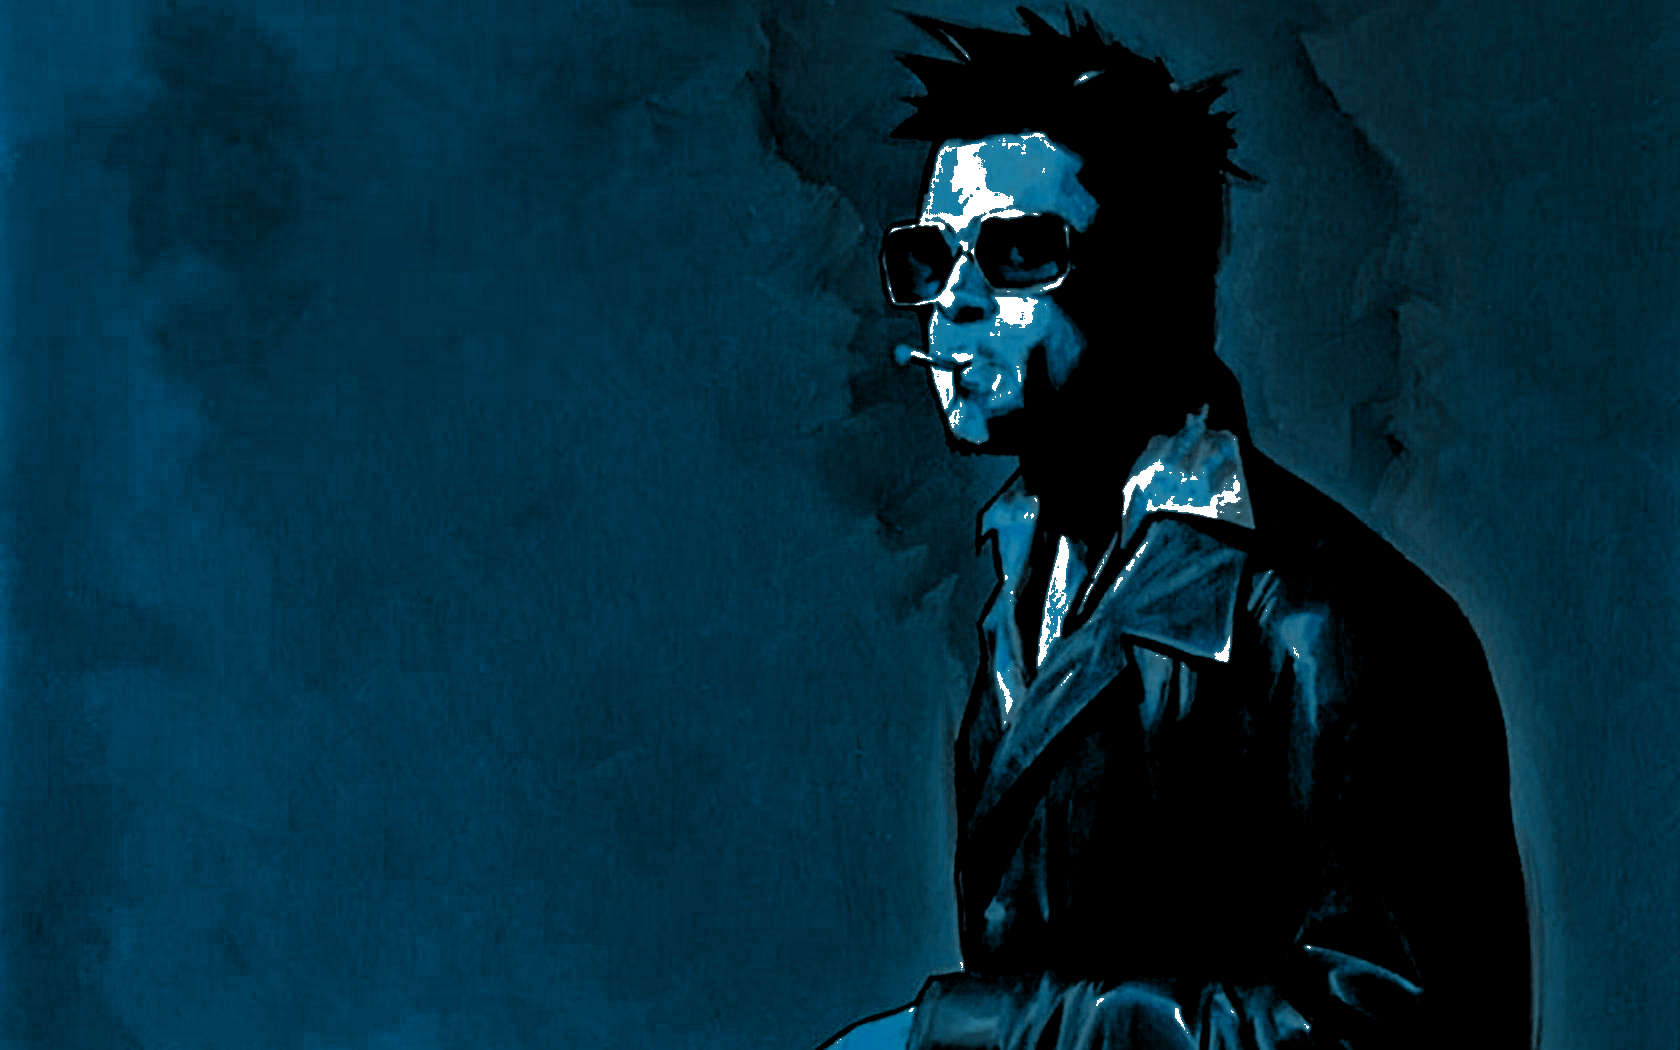 46 Fight Club Hd Wallpaper On Wallpapersafari